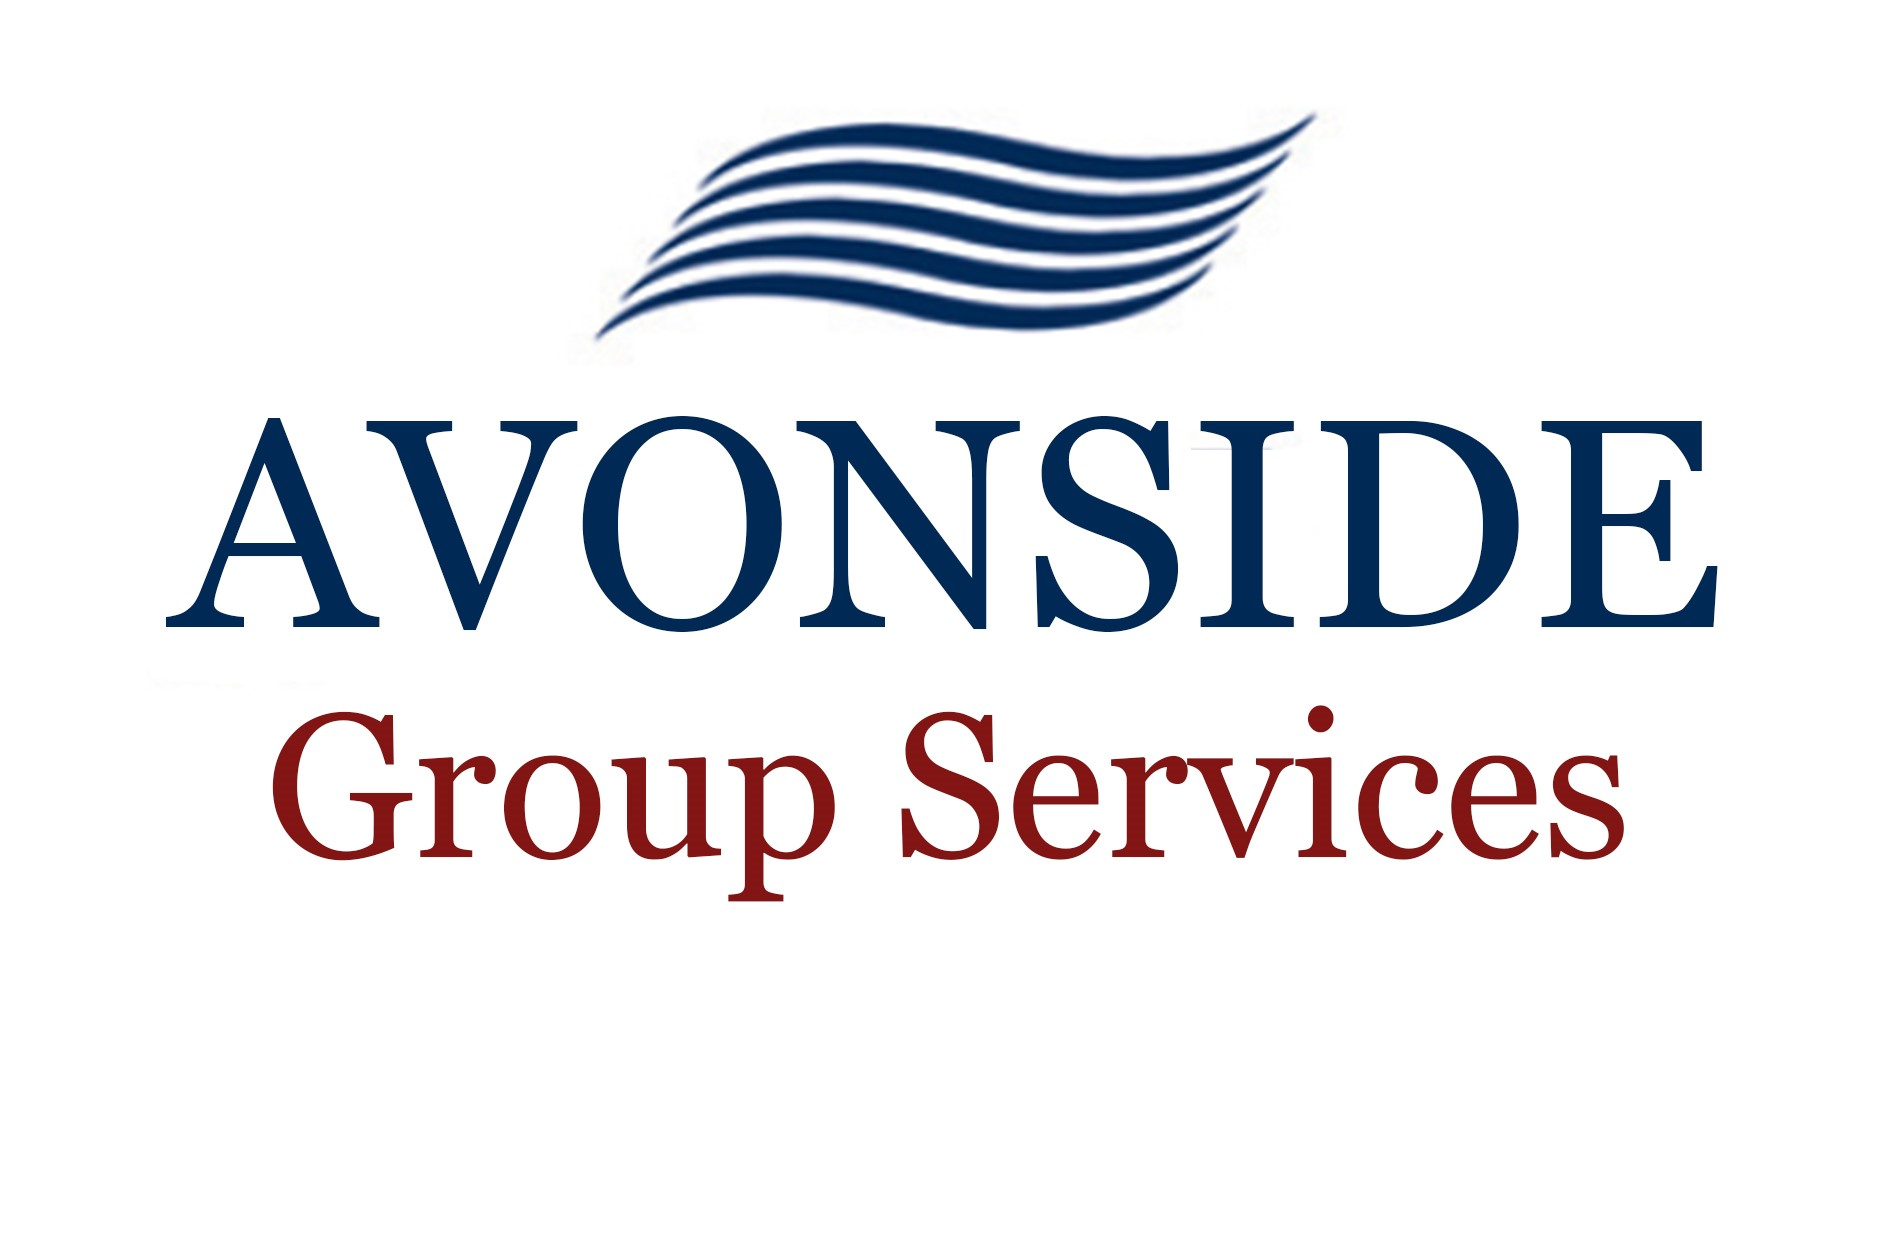 Avonside Group Services logo